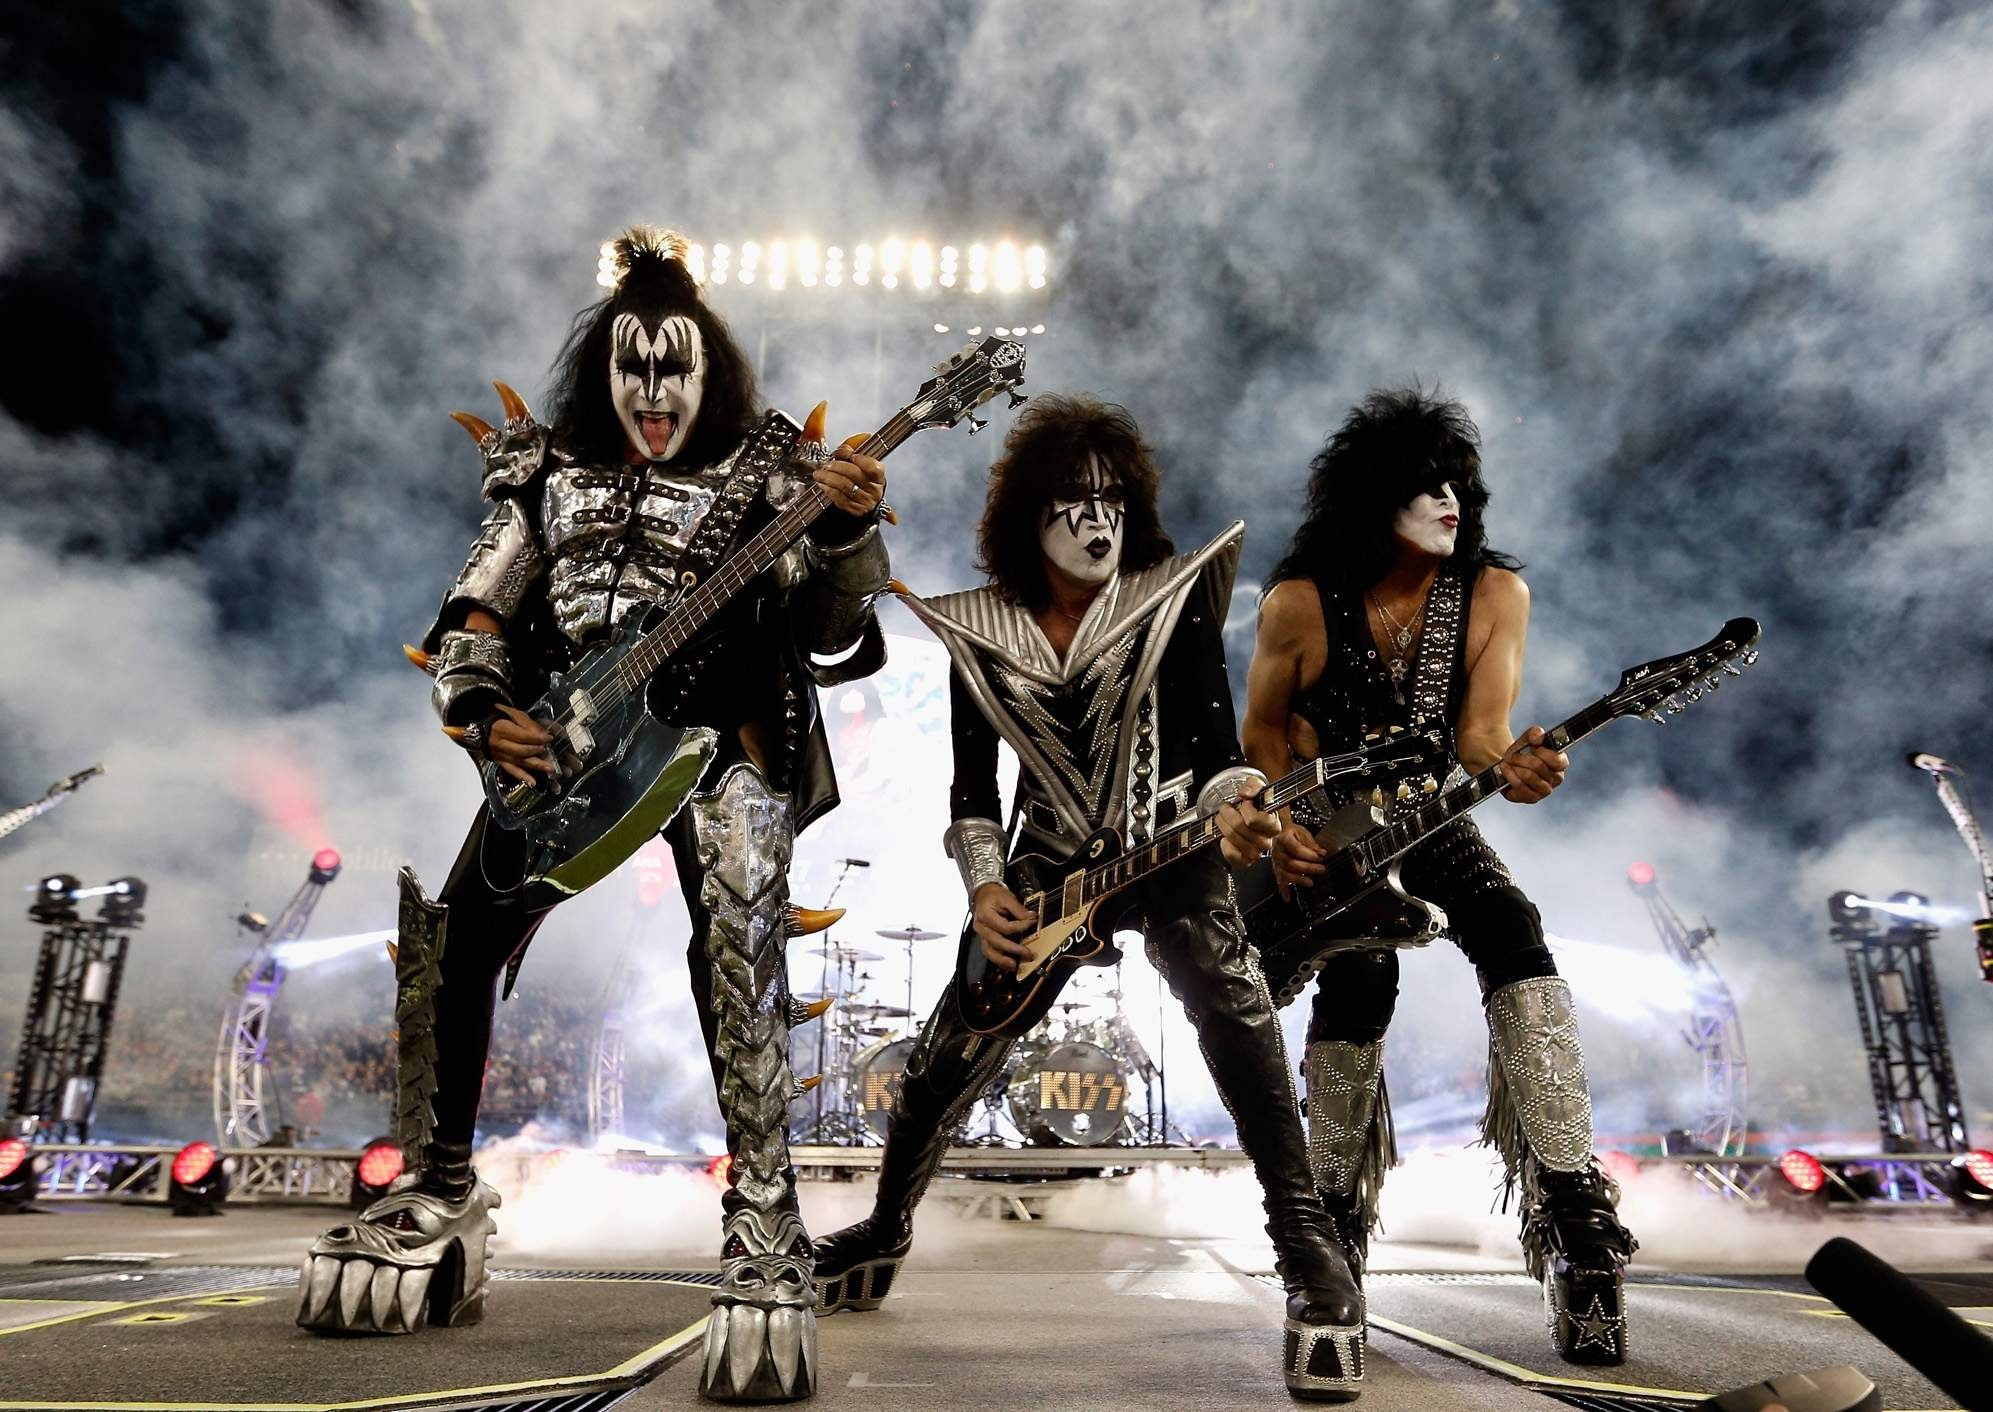 1993x1412 Gene Simmons, Music, Destroyer, Kiss, Musician Wallpaper in   Resolution